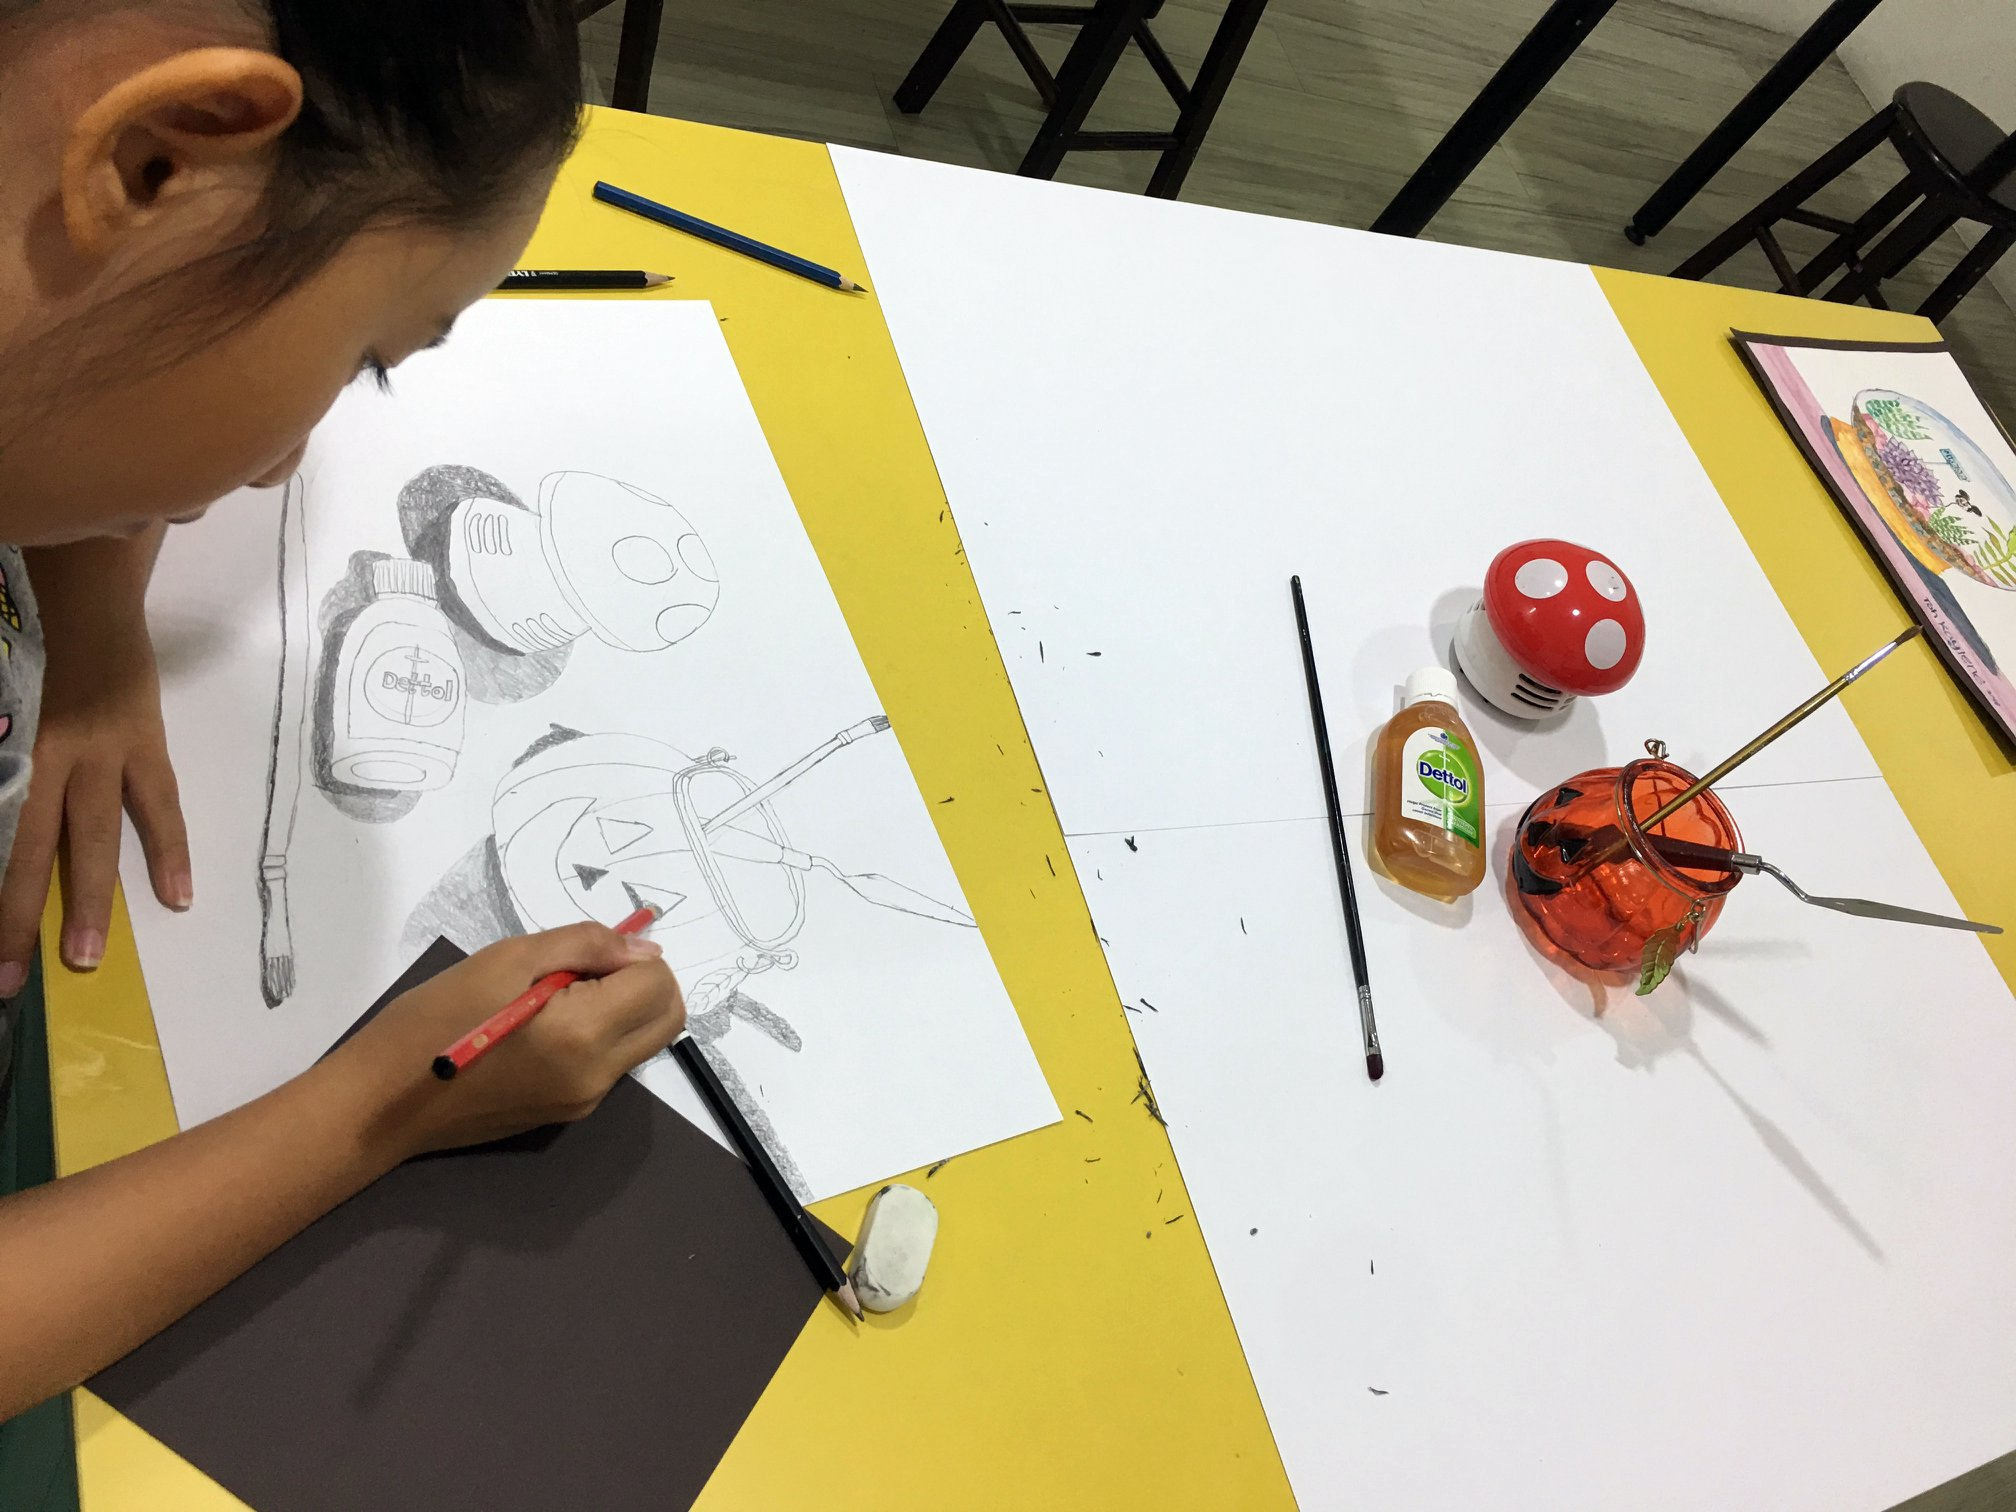 Transitioning from a 3 dimensional view and applying to a 2 dimensional drawing